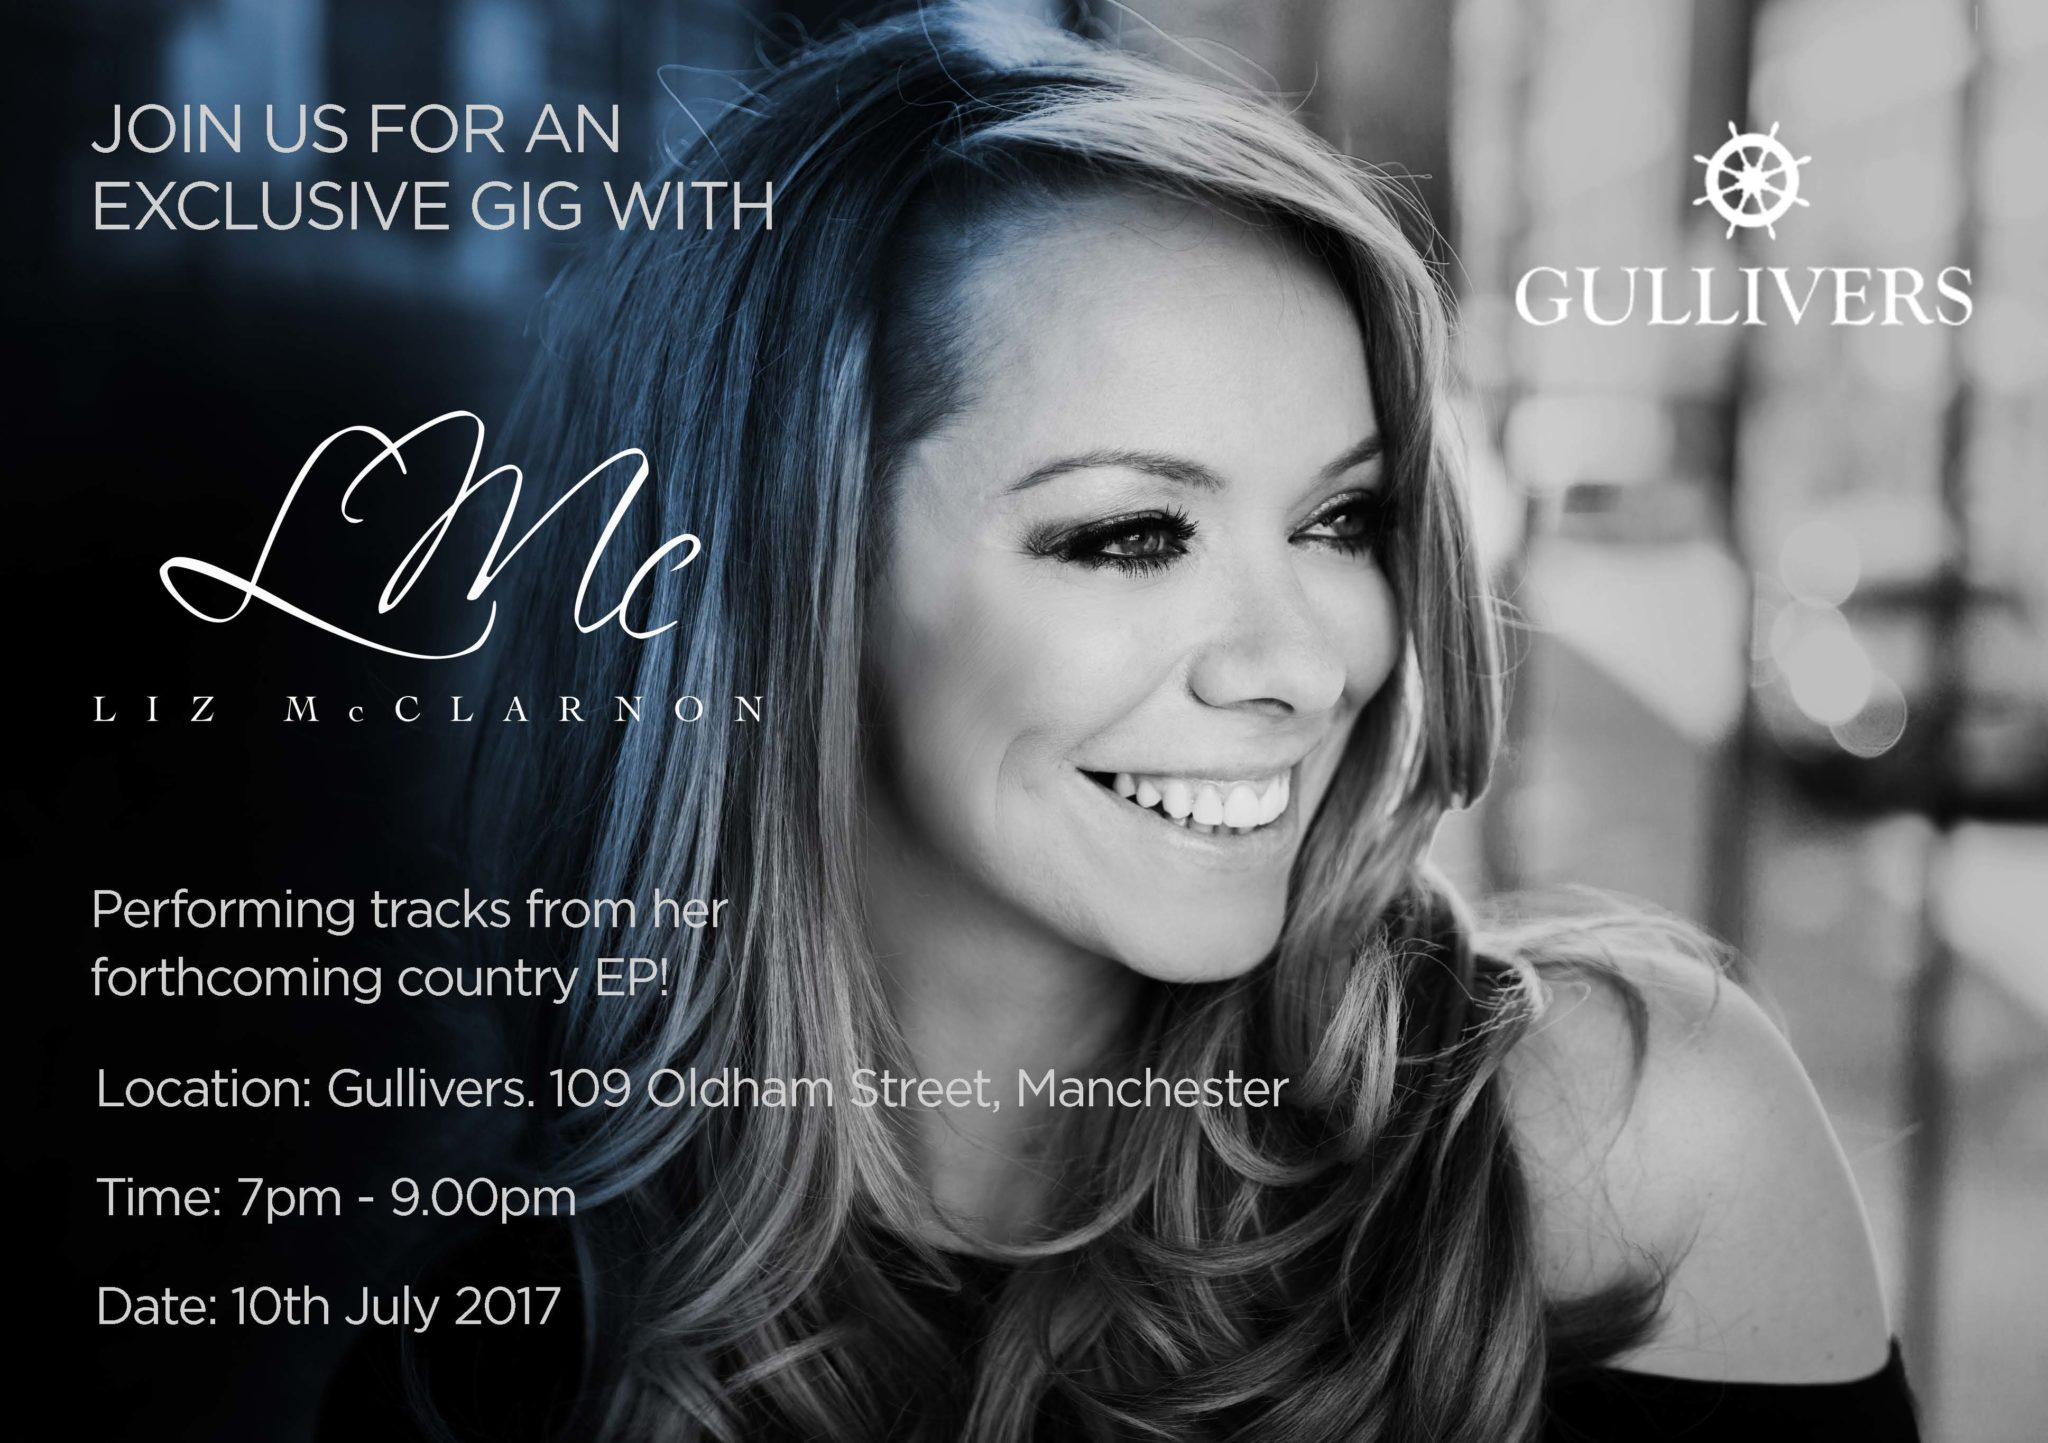 Exclusive gig with Liz McClarnon at Gullivers, Manchester, 10th July 2017